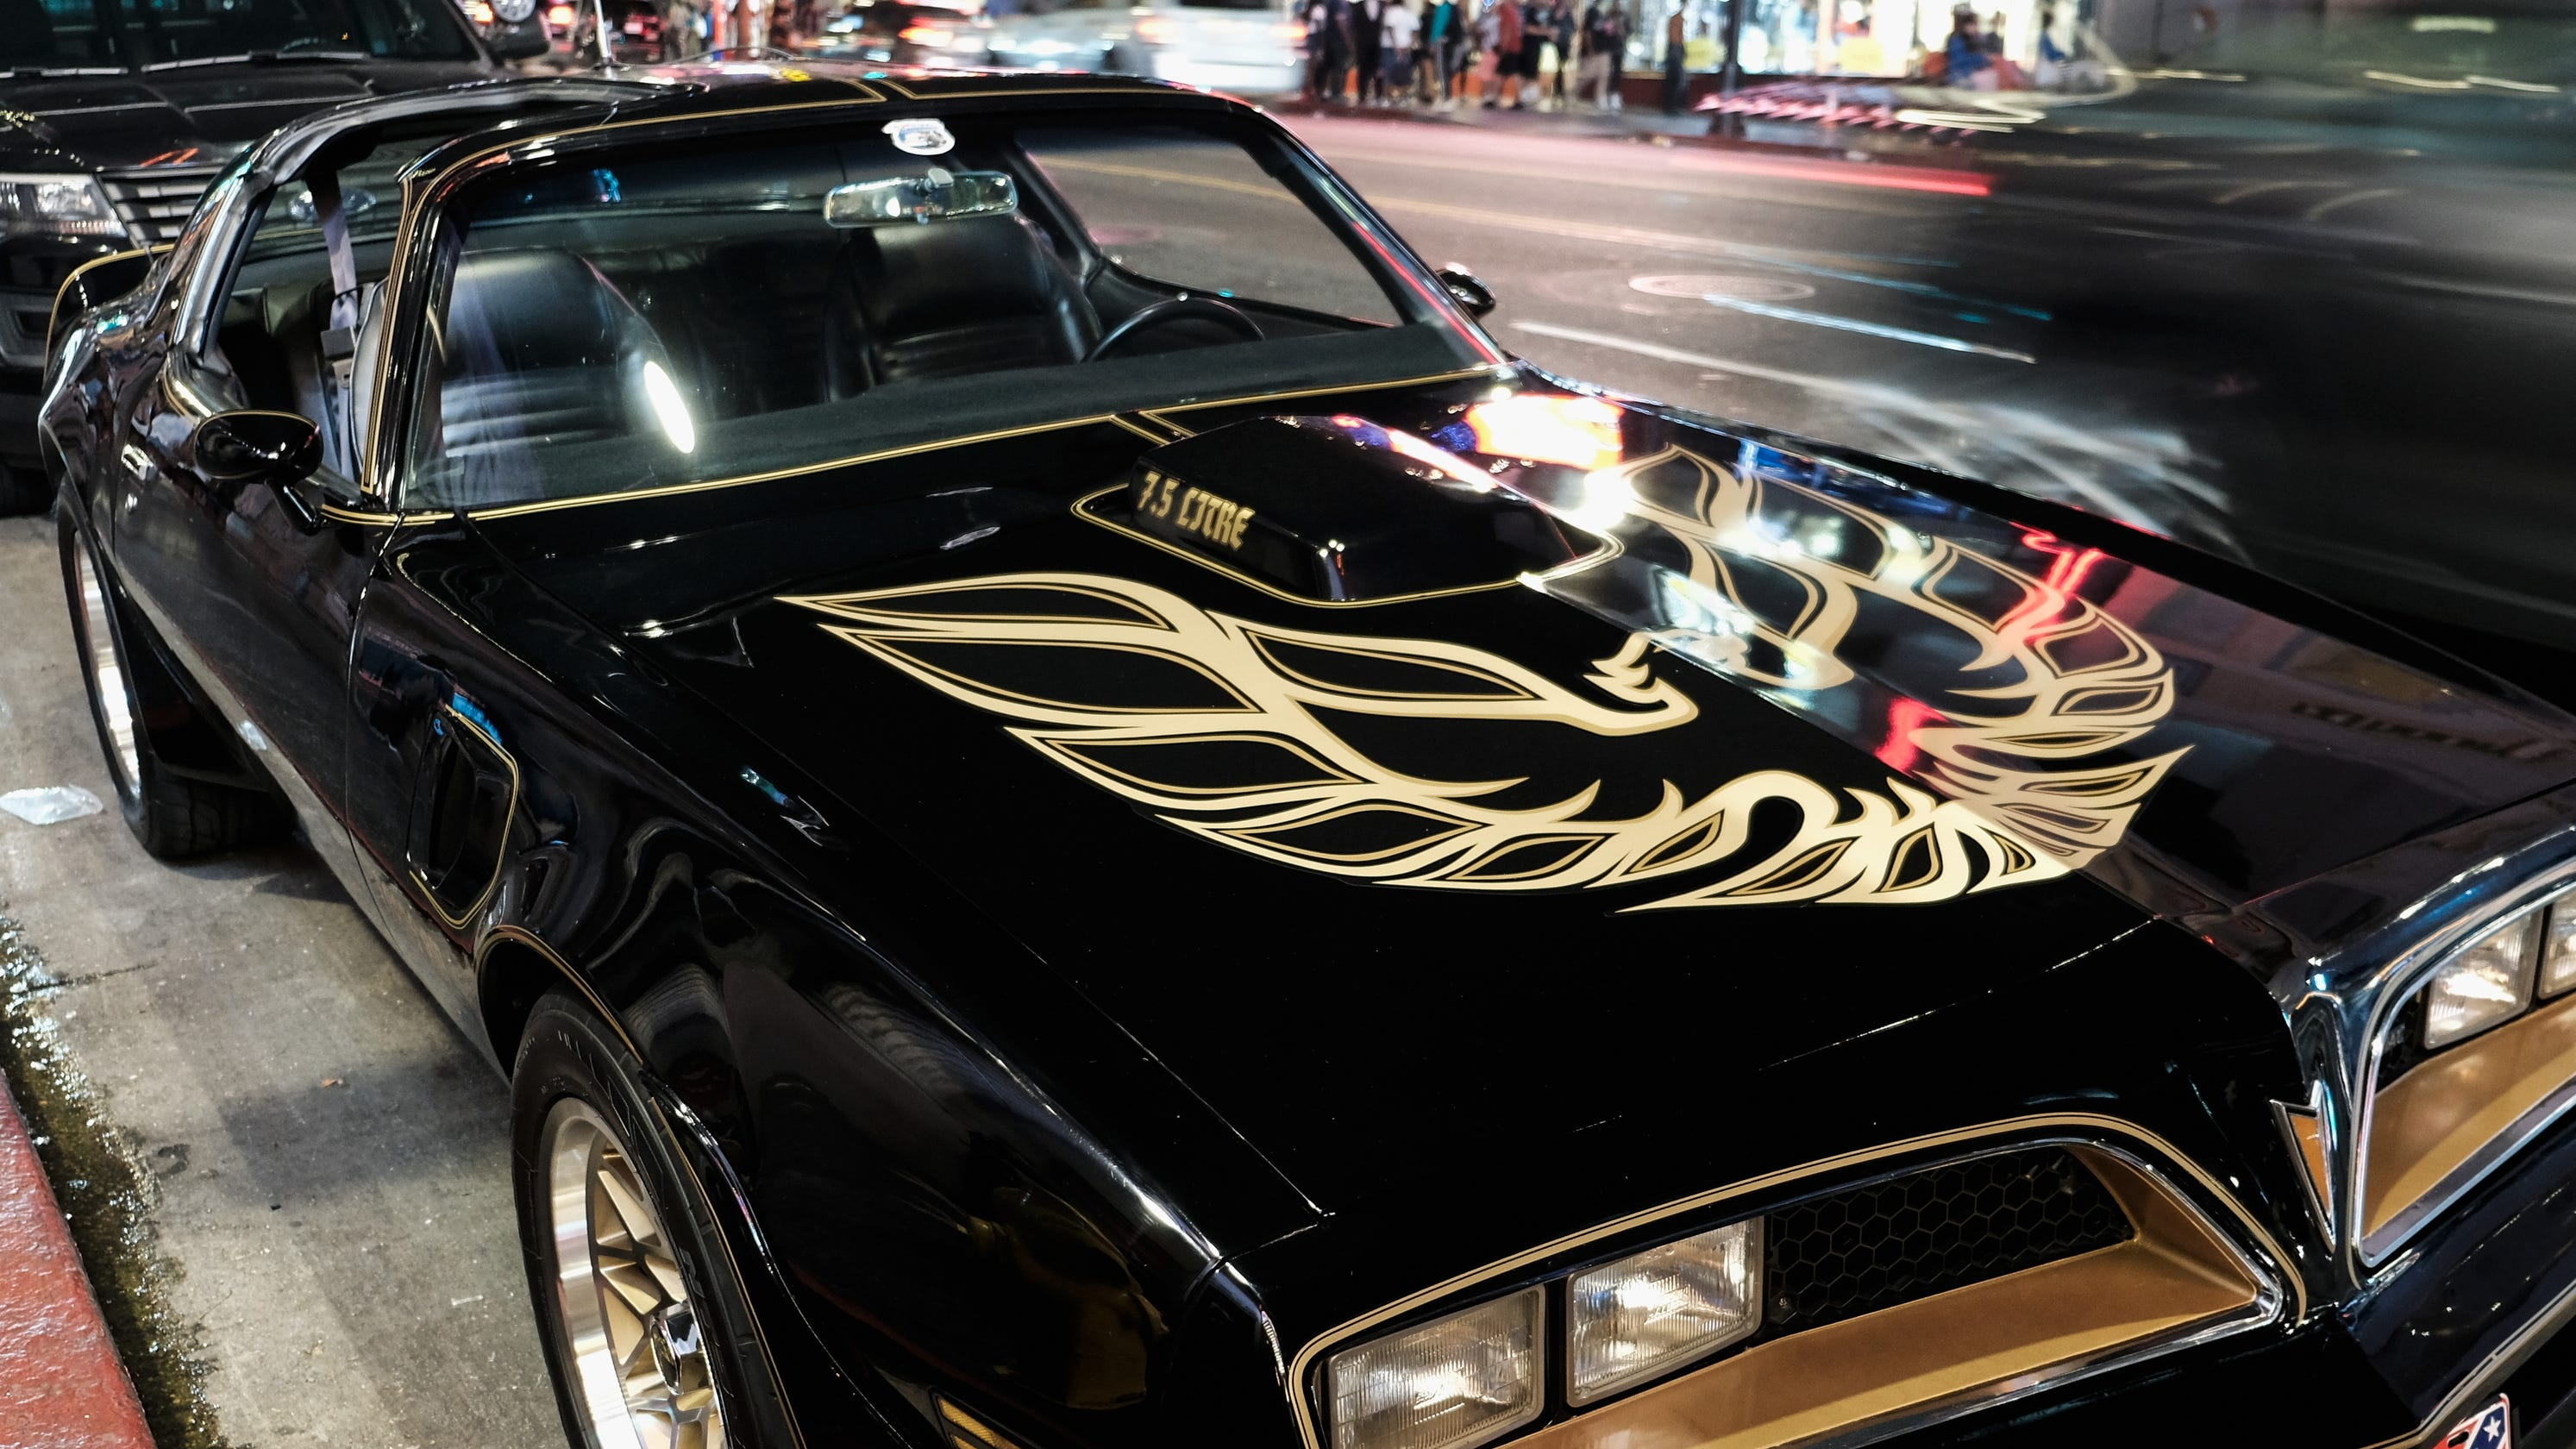 Burt Reynolds' 'Smokey and the Bandit' boosted '77 Trans Am